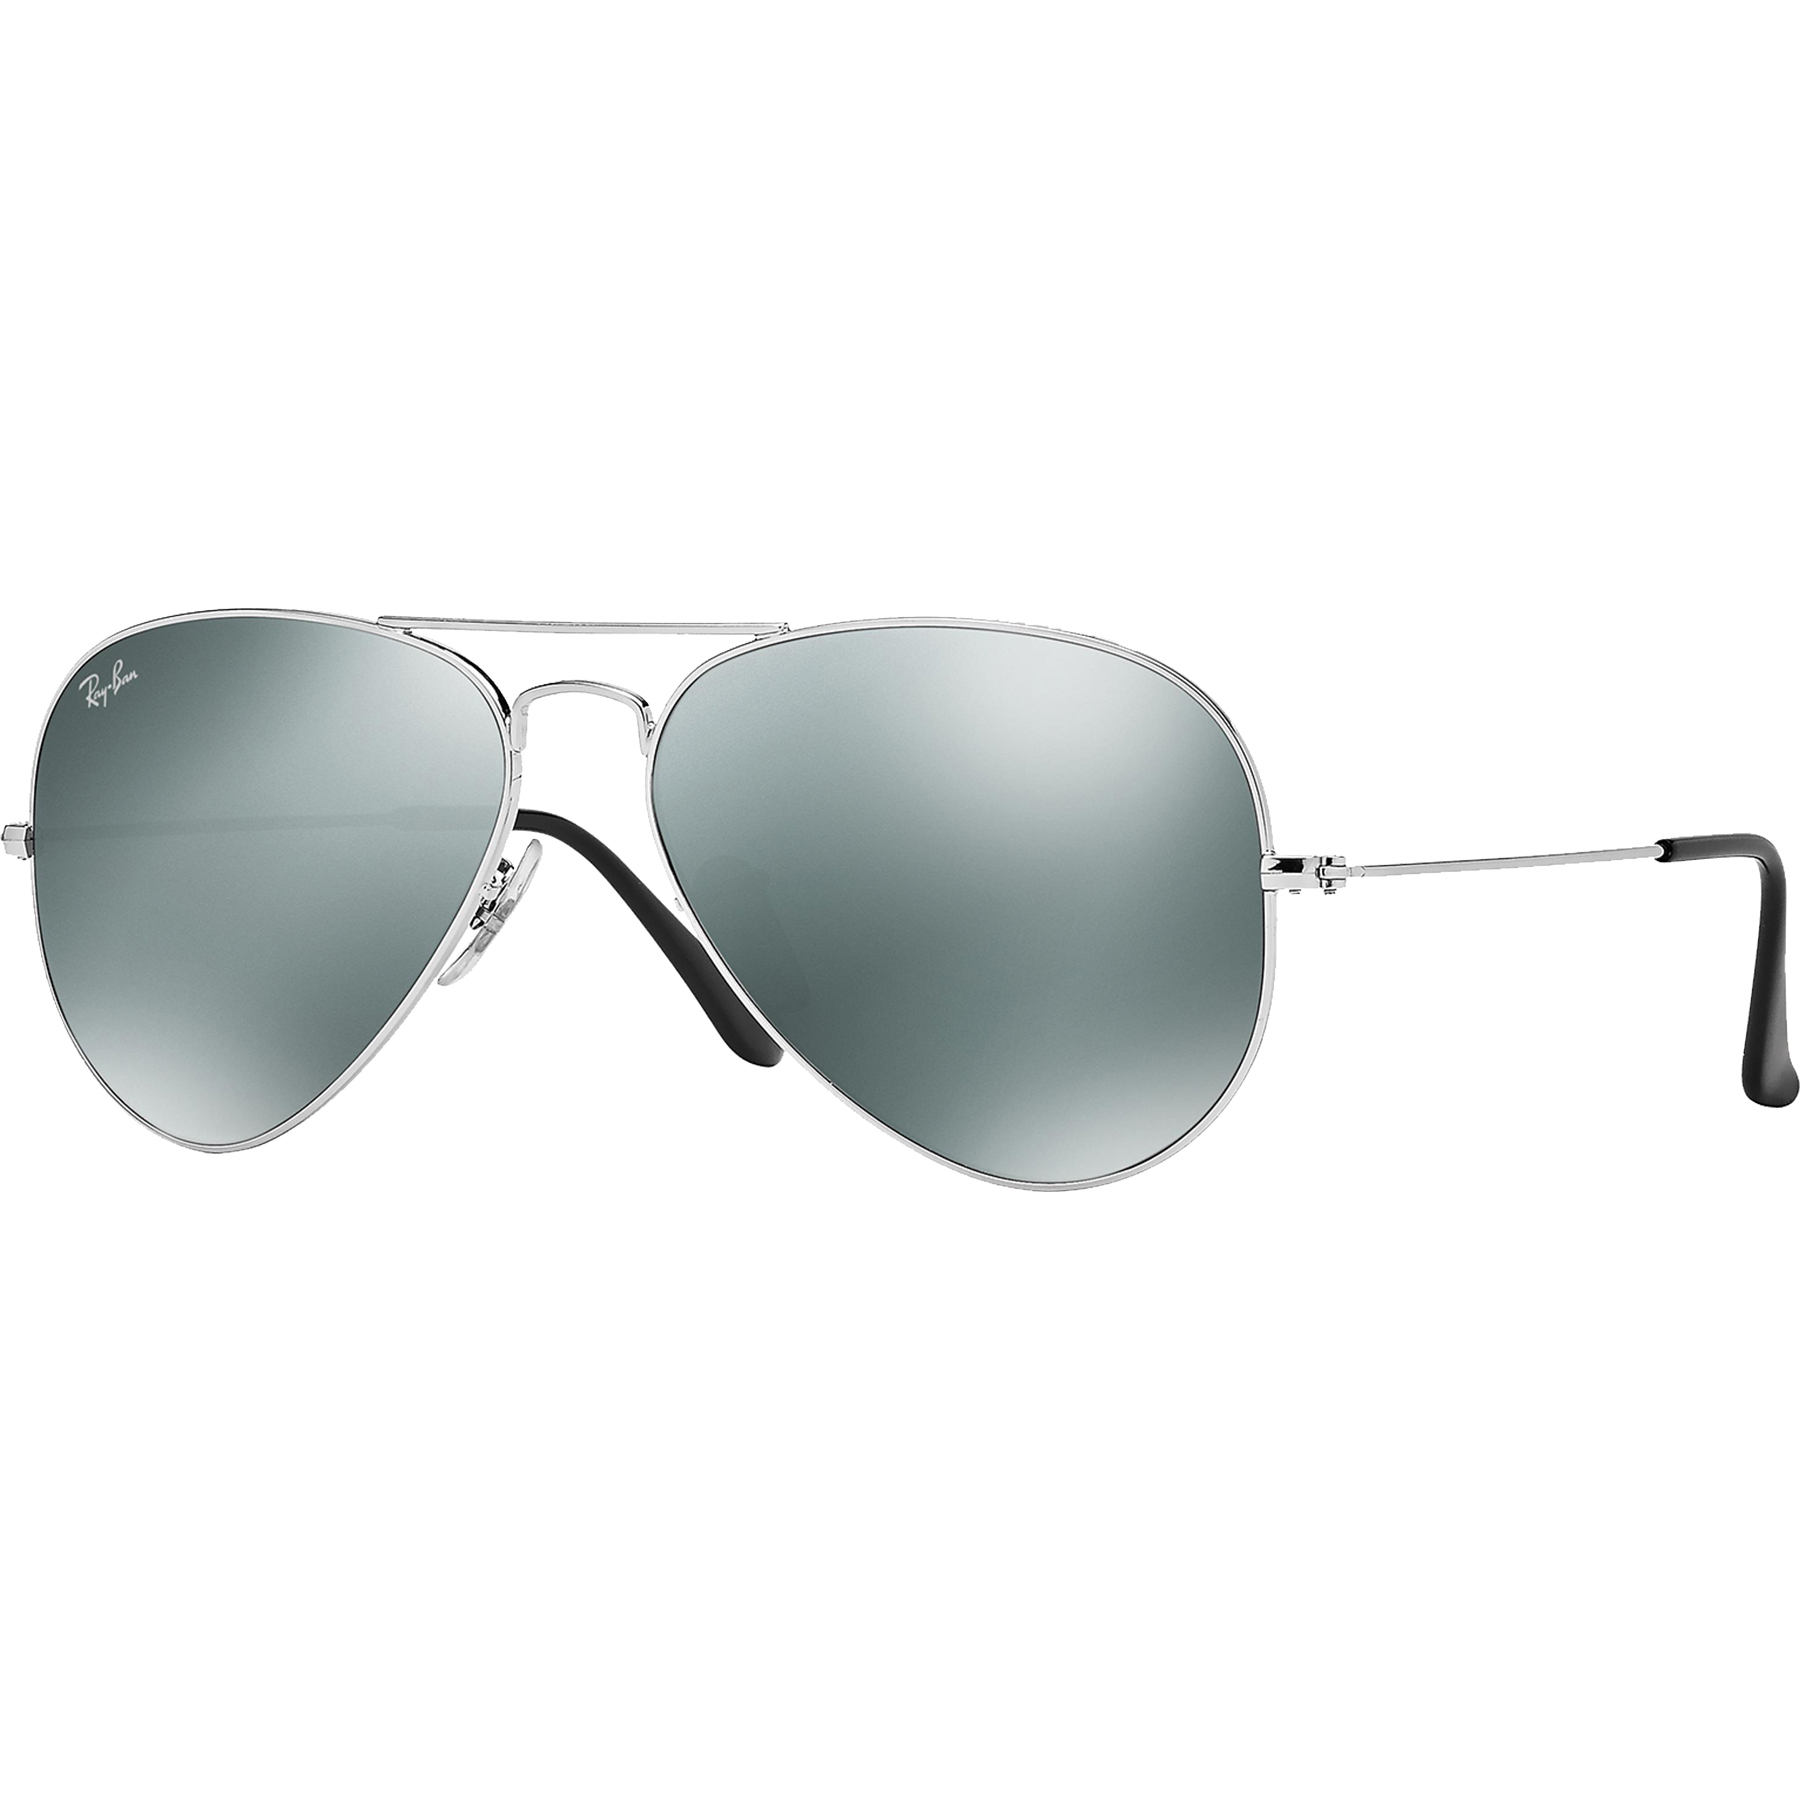 6db704e392 Ray-Ban Aviator Sunglasses - Silver Mirror - 0RB3025W327758 ...